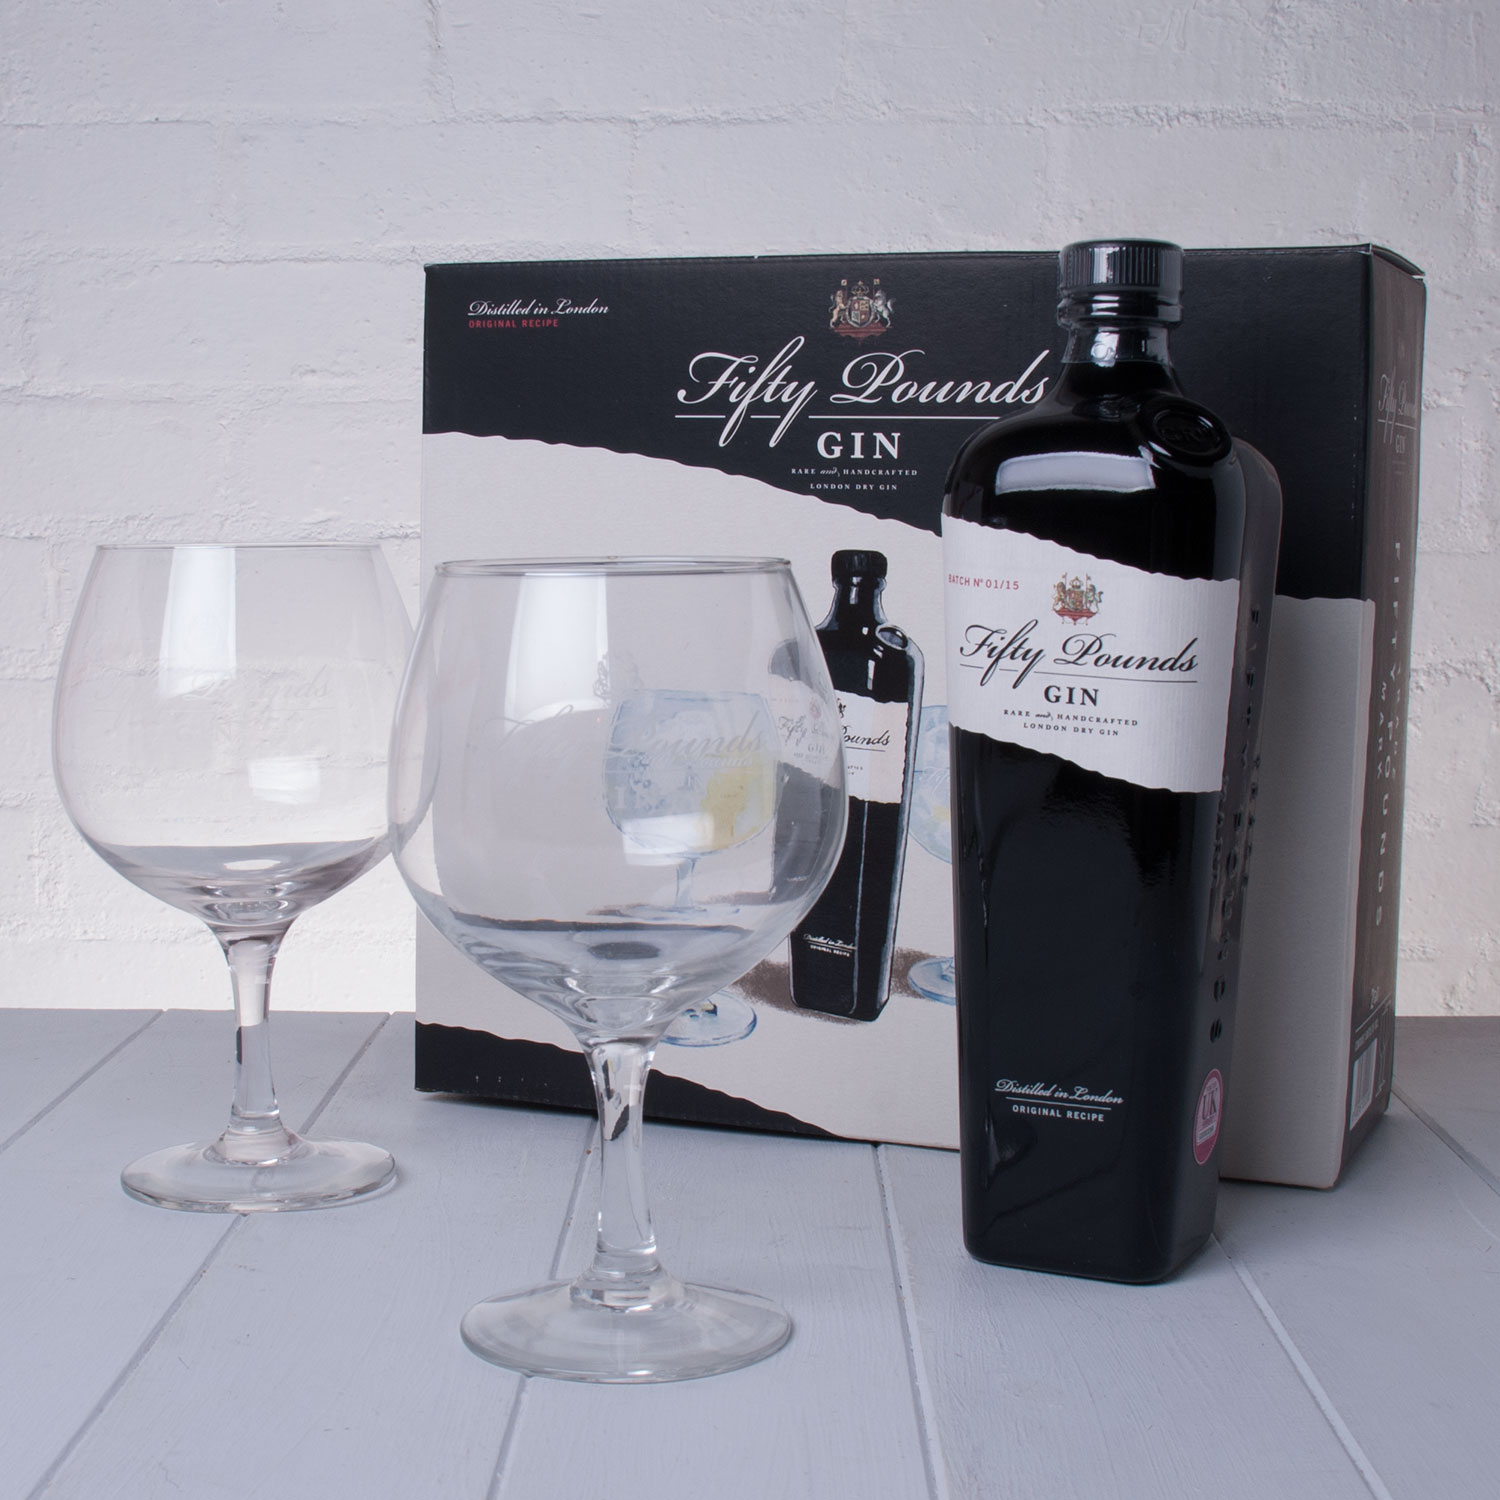 Hampers Fifty Pounds Small Batch Gin Gift Set with G&T Balloon Glasses